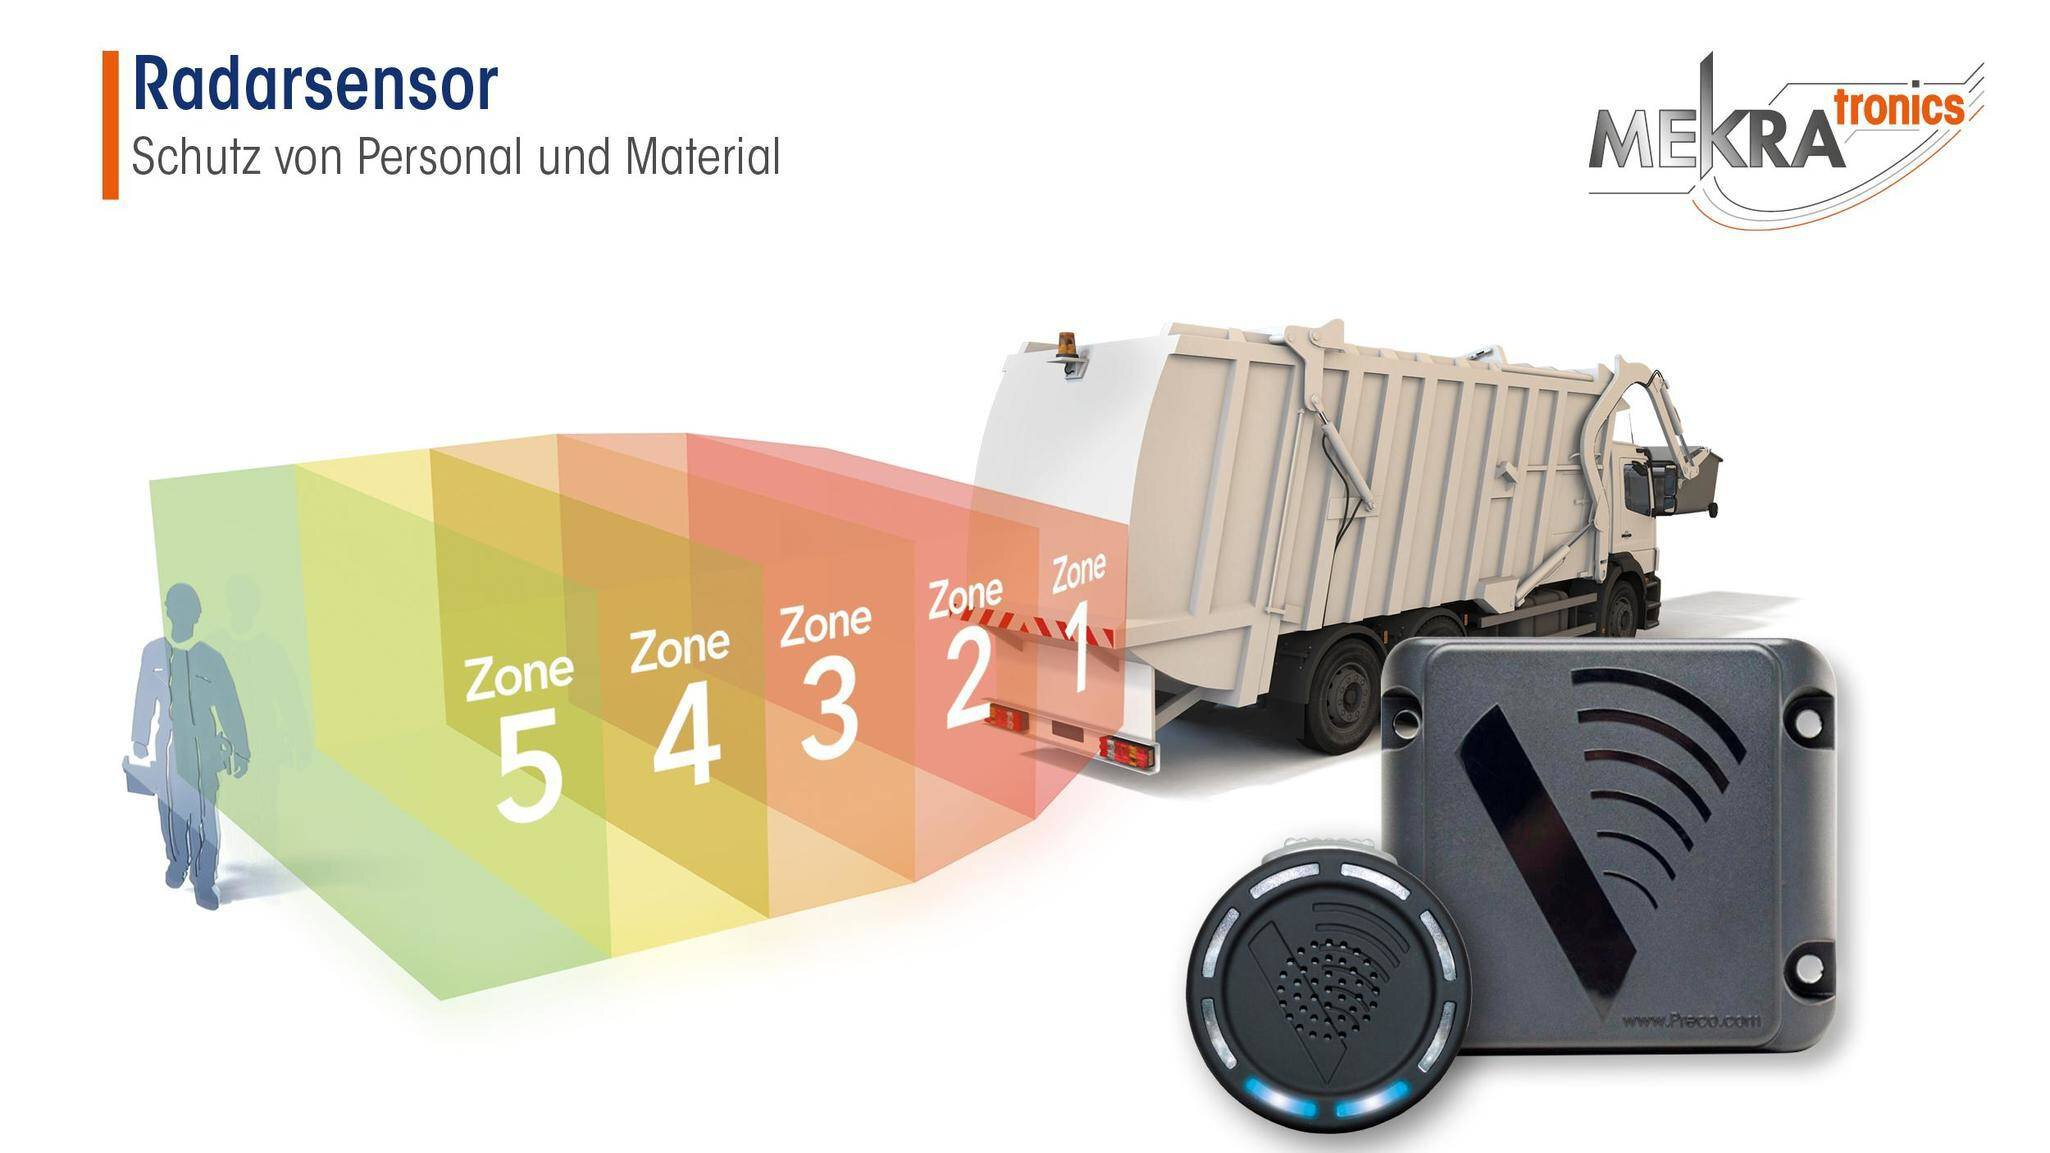 Gallery image 0 - Use the proven radar sensor for the rear to protect people and matrial.